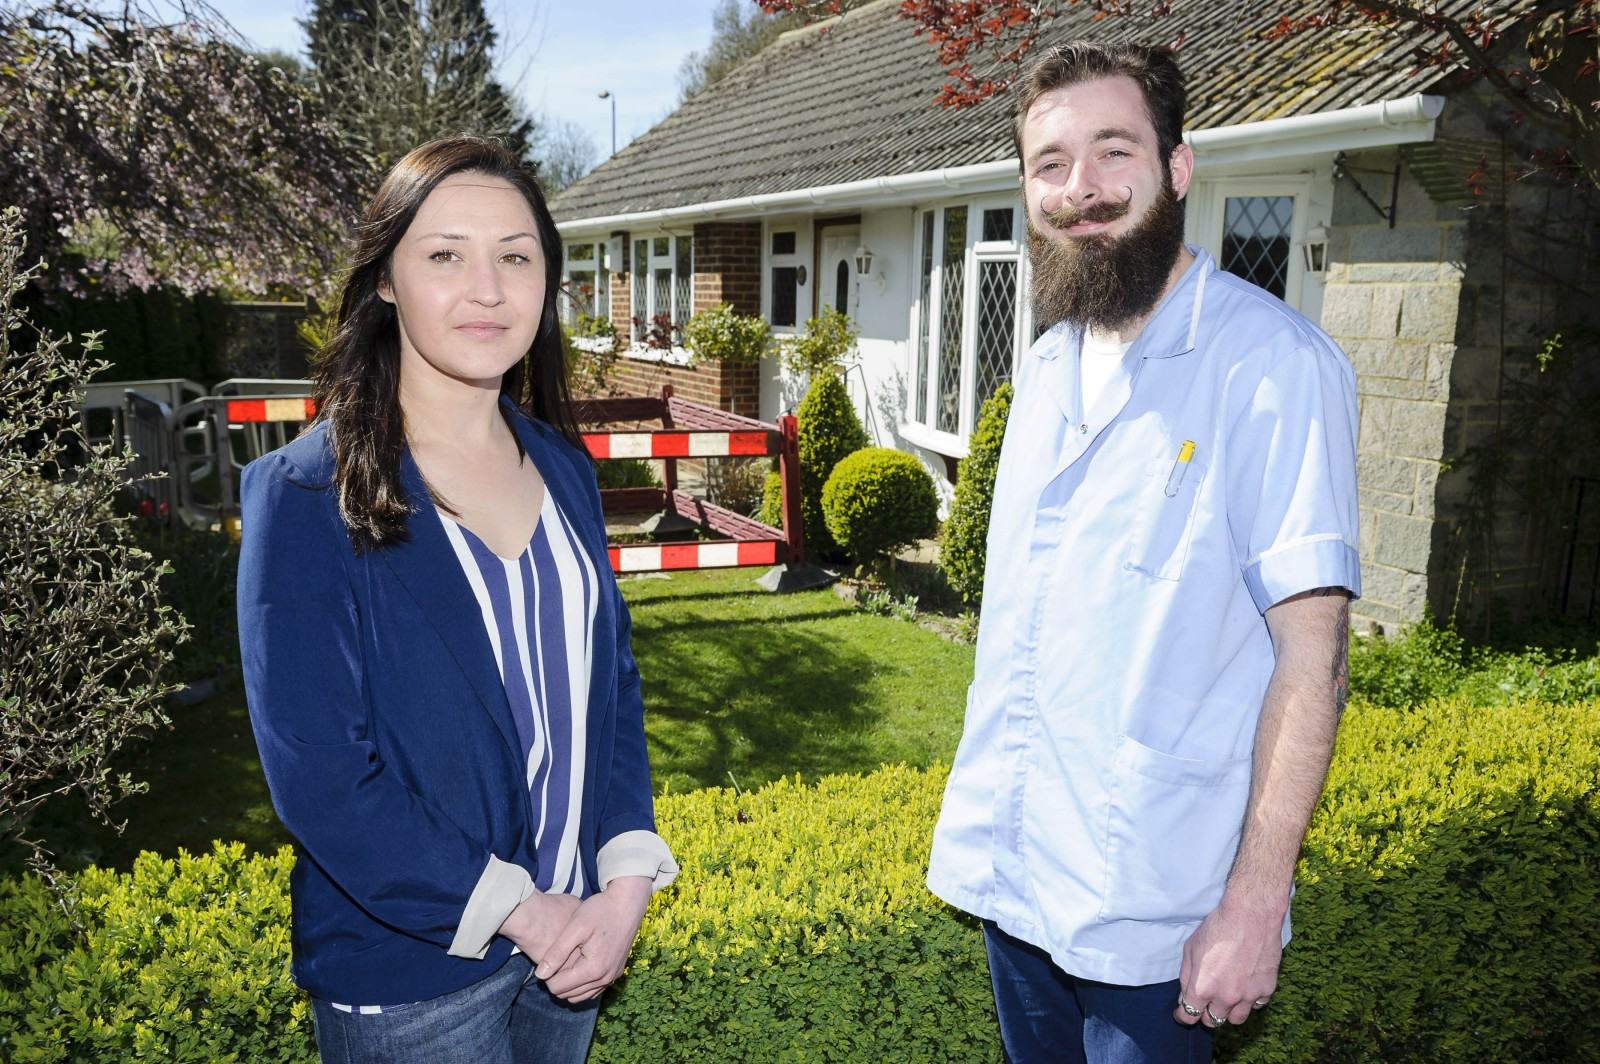 Hero and a half shell – woman saves pensioners, and their tortoise from burning house